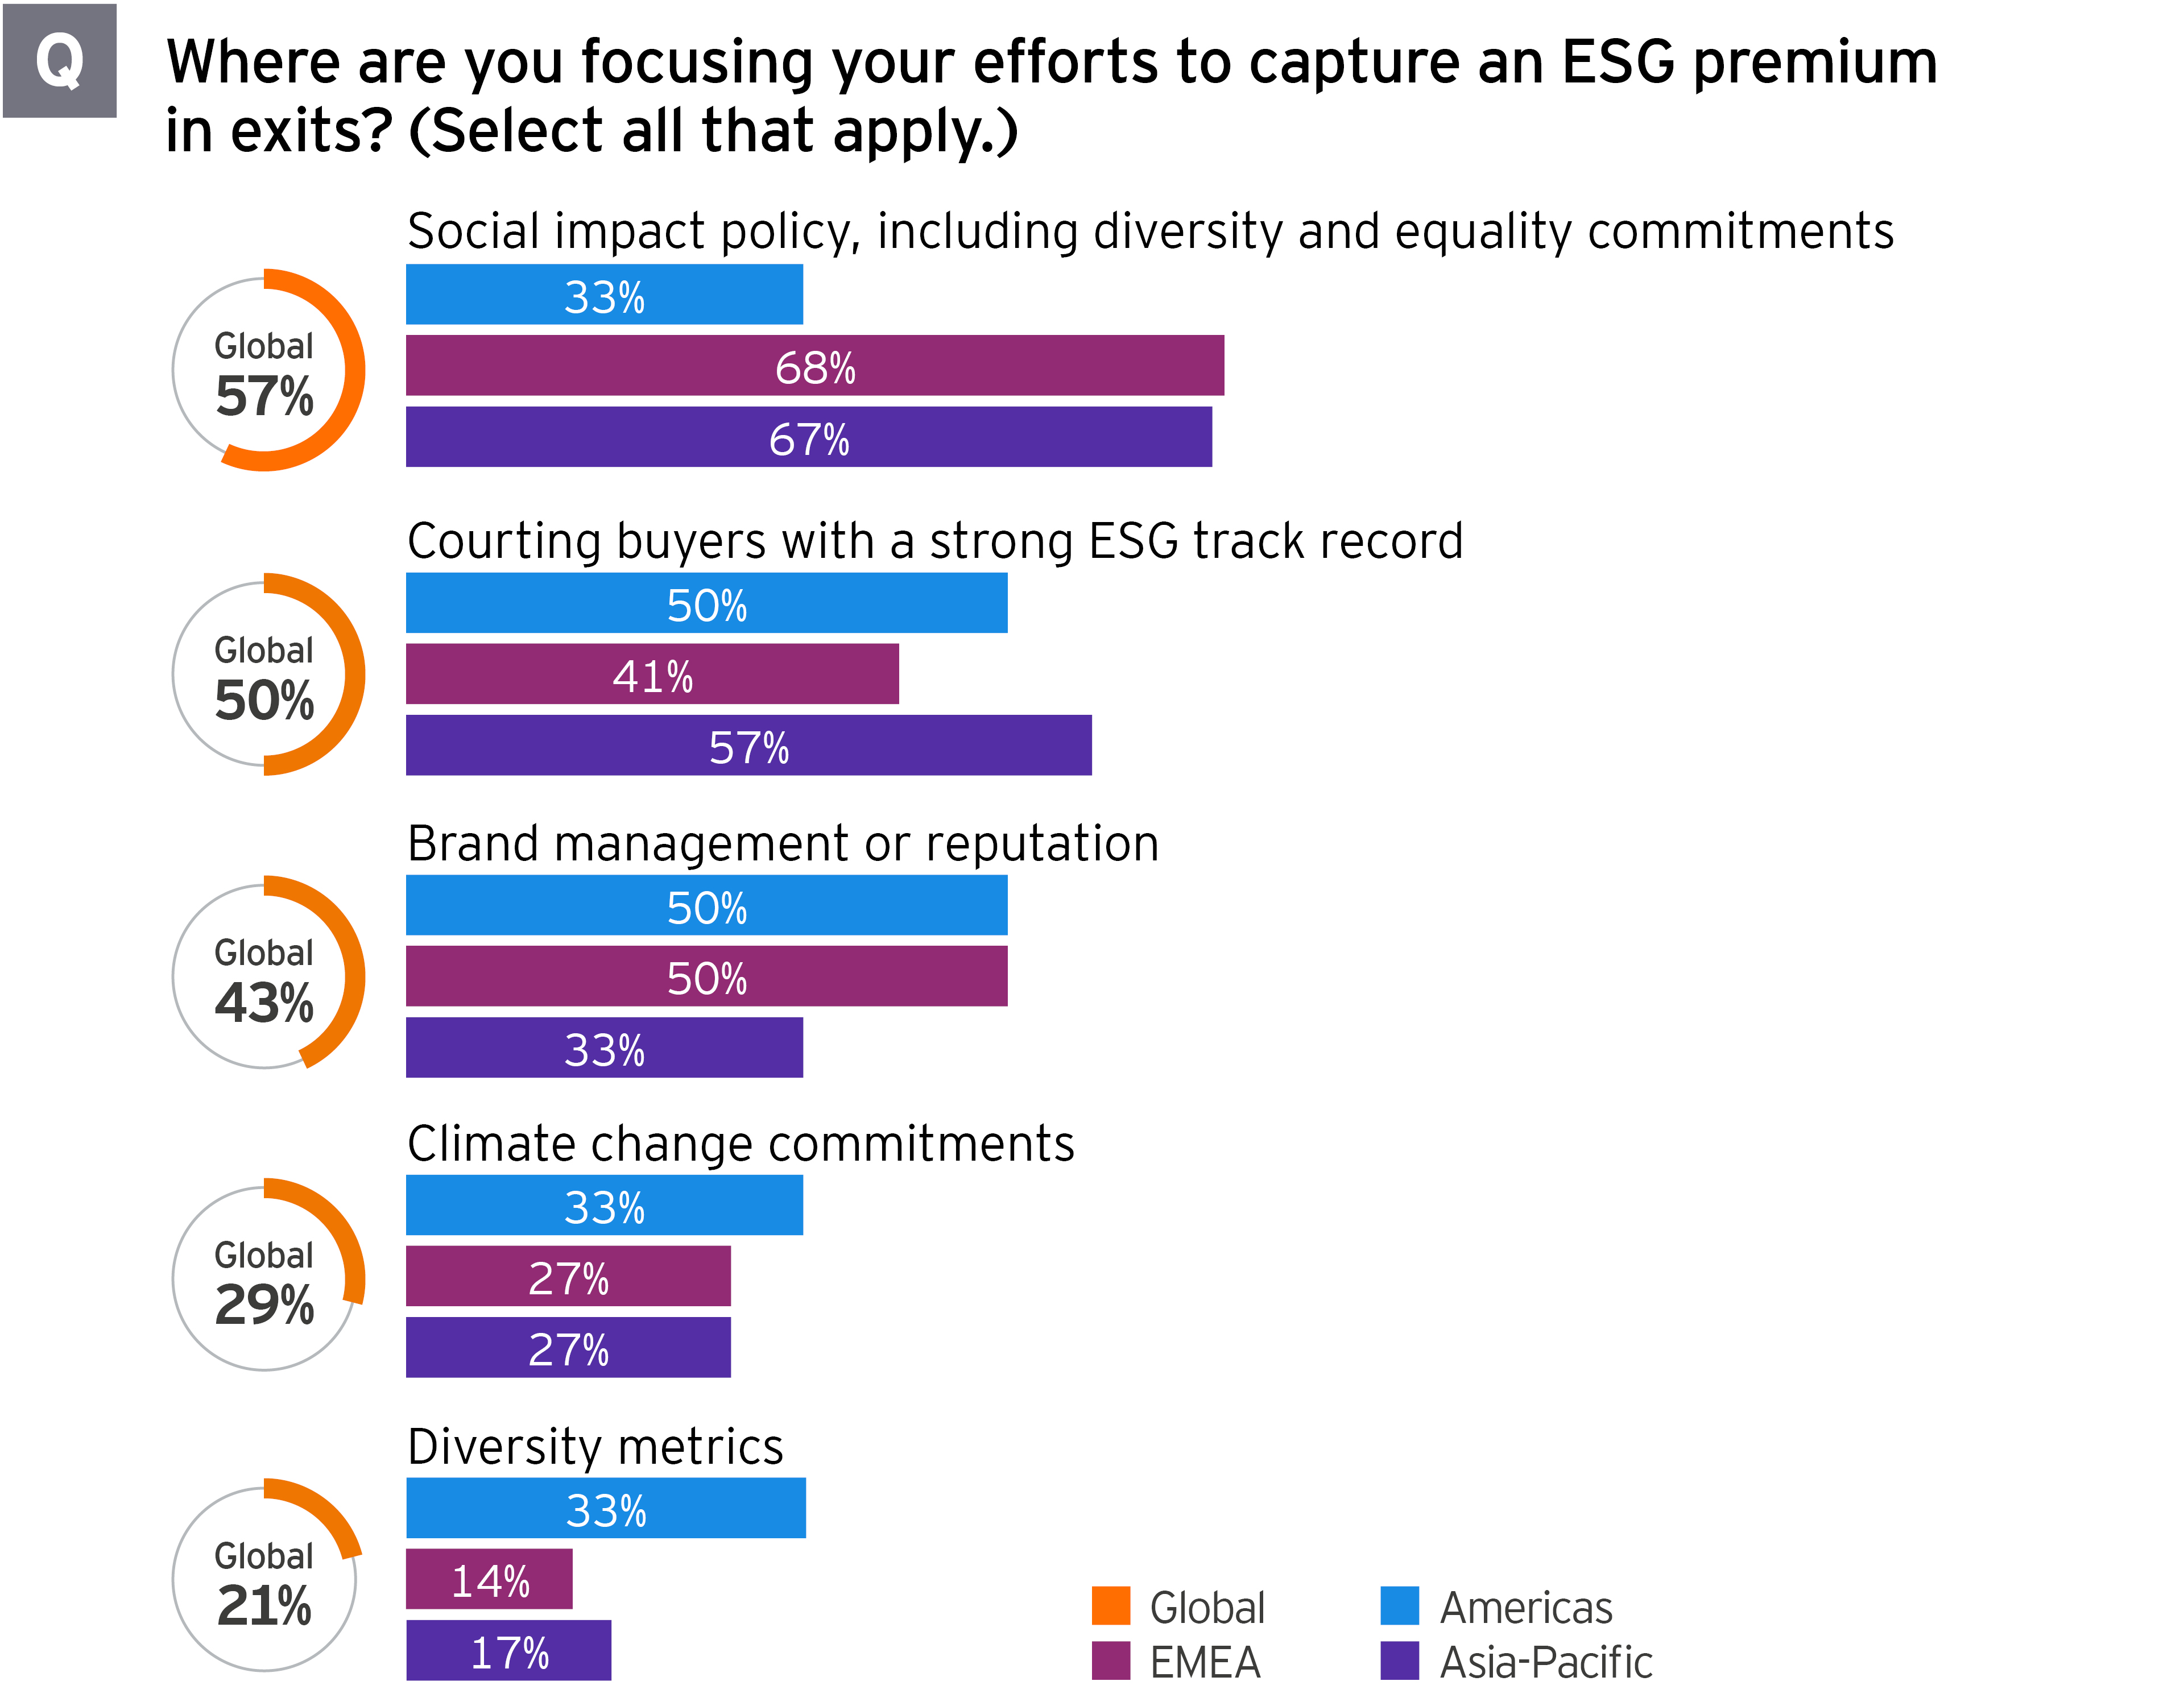 2021 Global PE Divestment Study where focusing efforts to capture ESG premium in exits